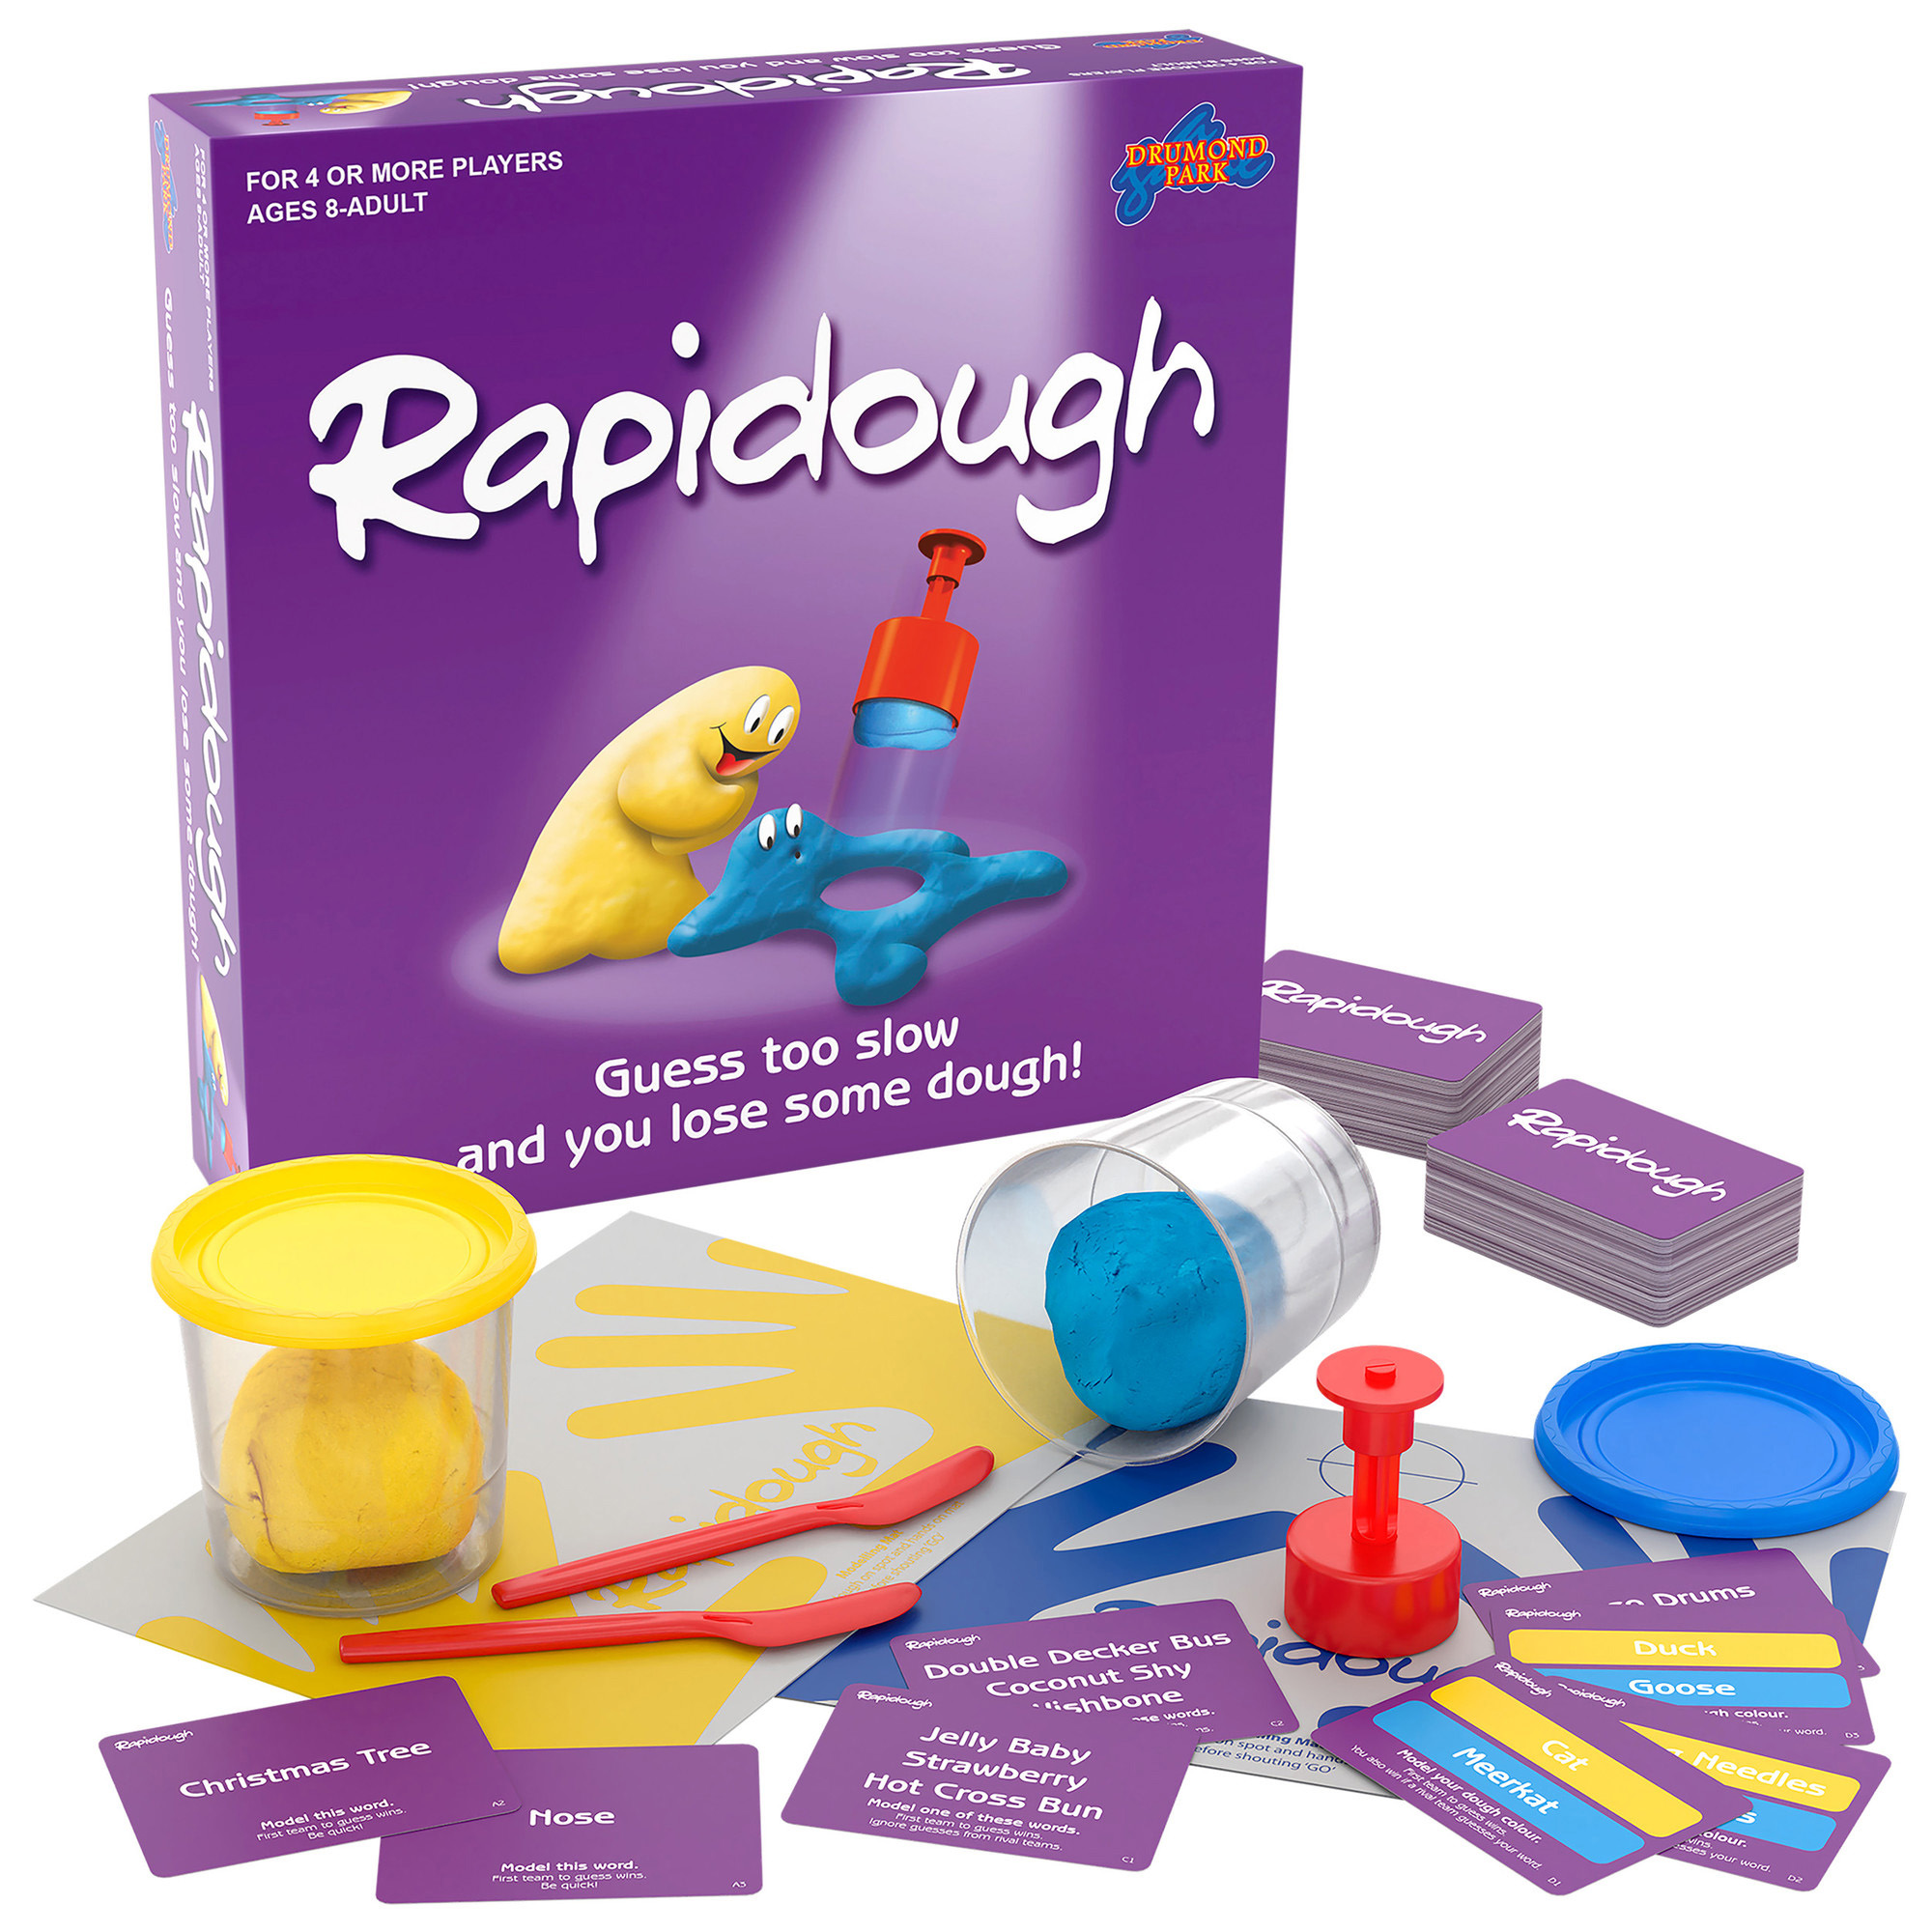 Image of Rapidough Game